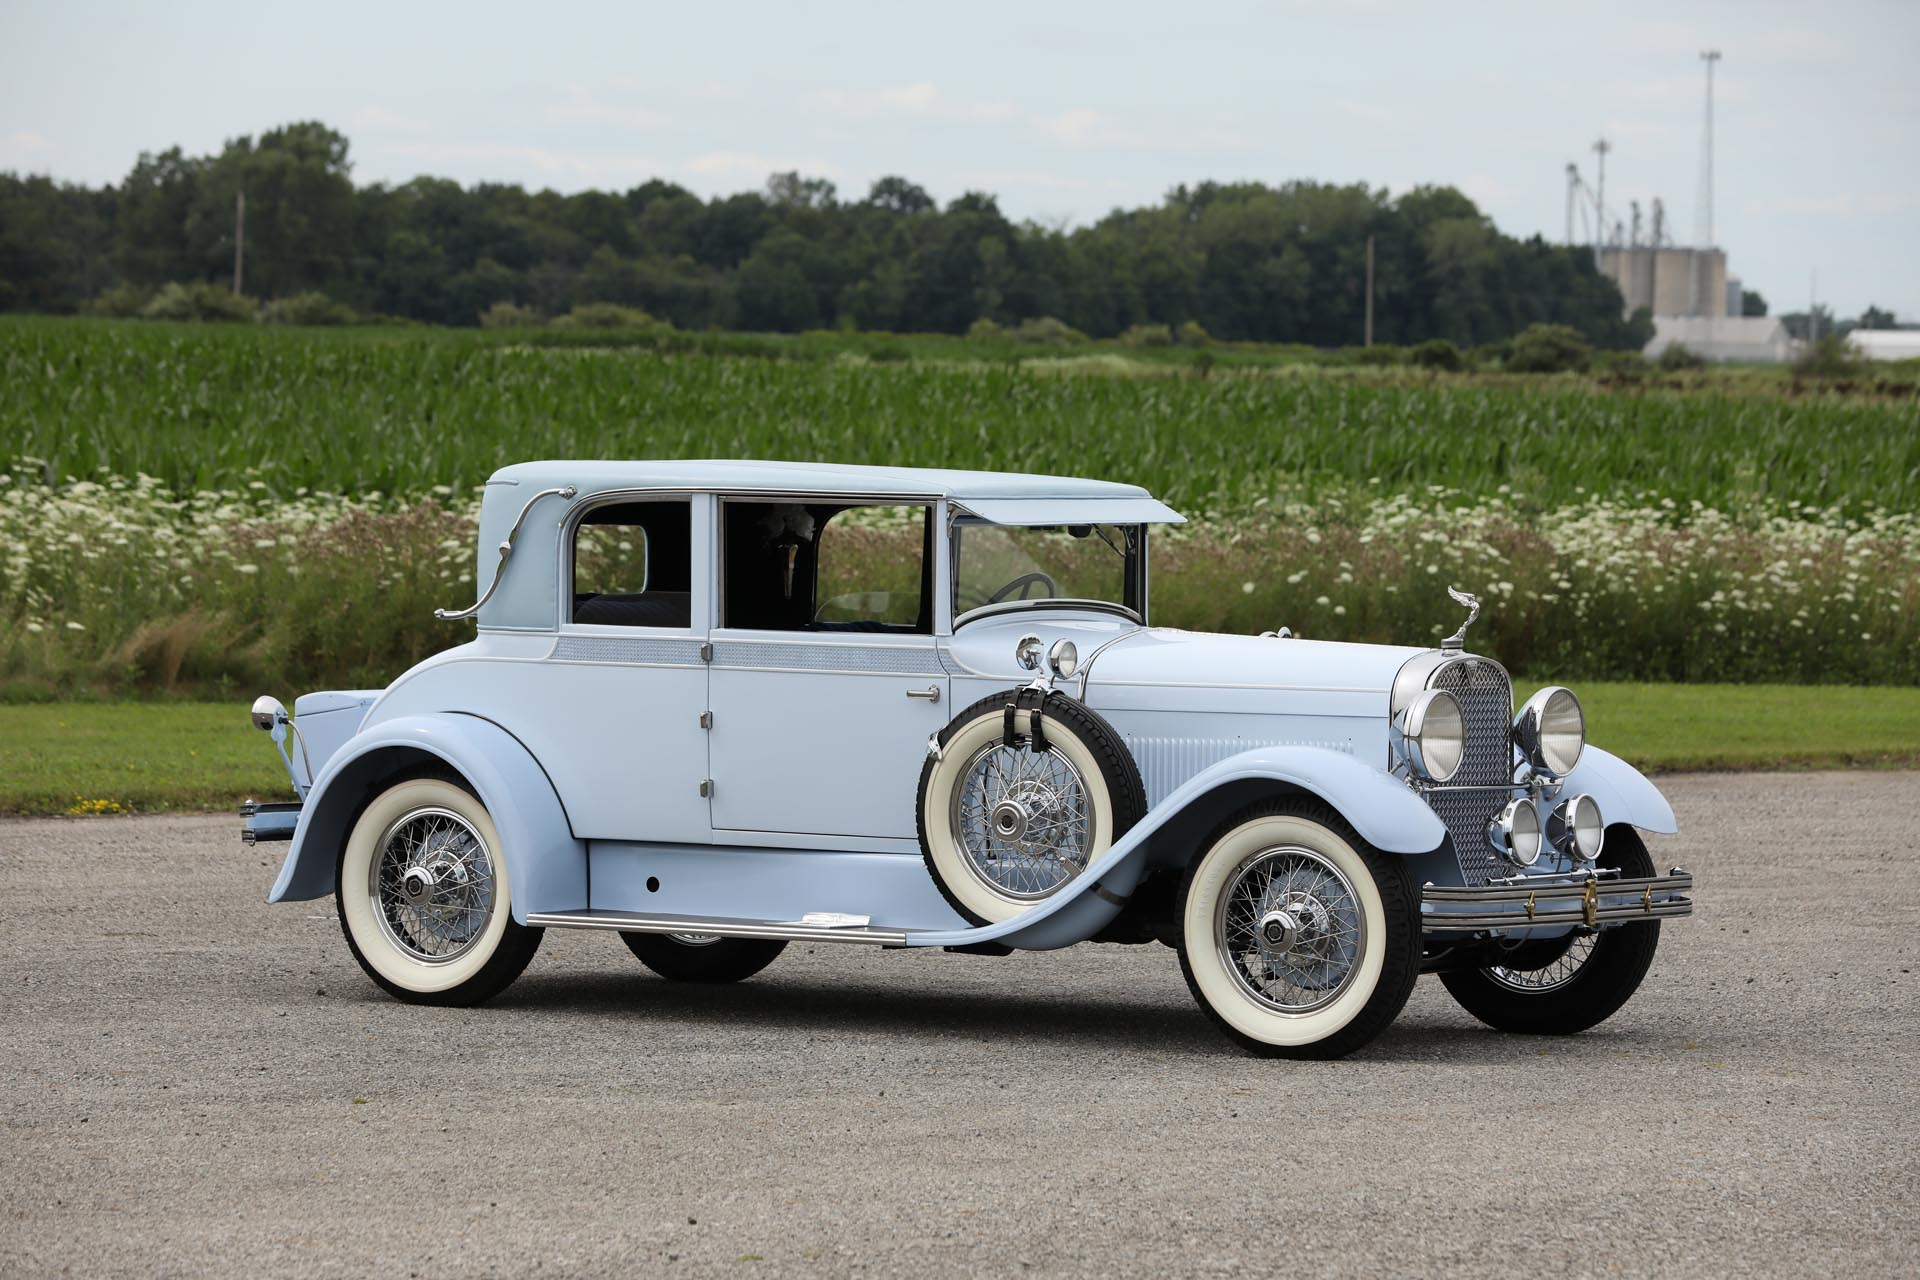 1928 Hudson Super Six Series O Victoria